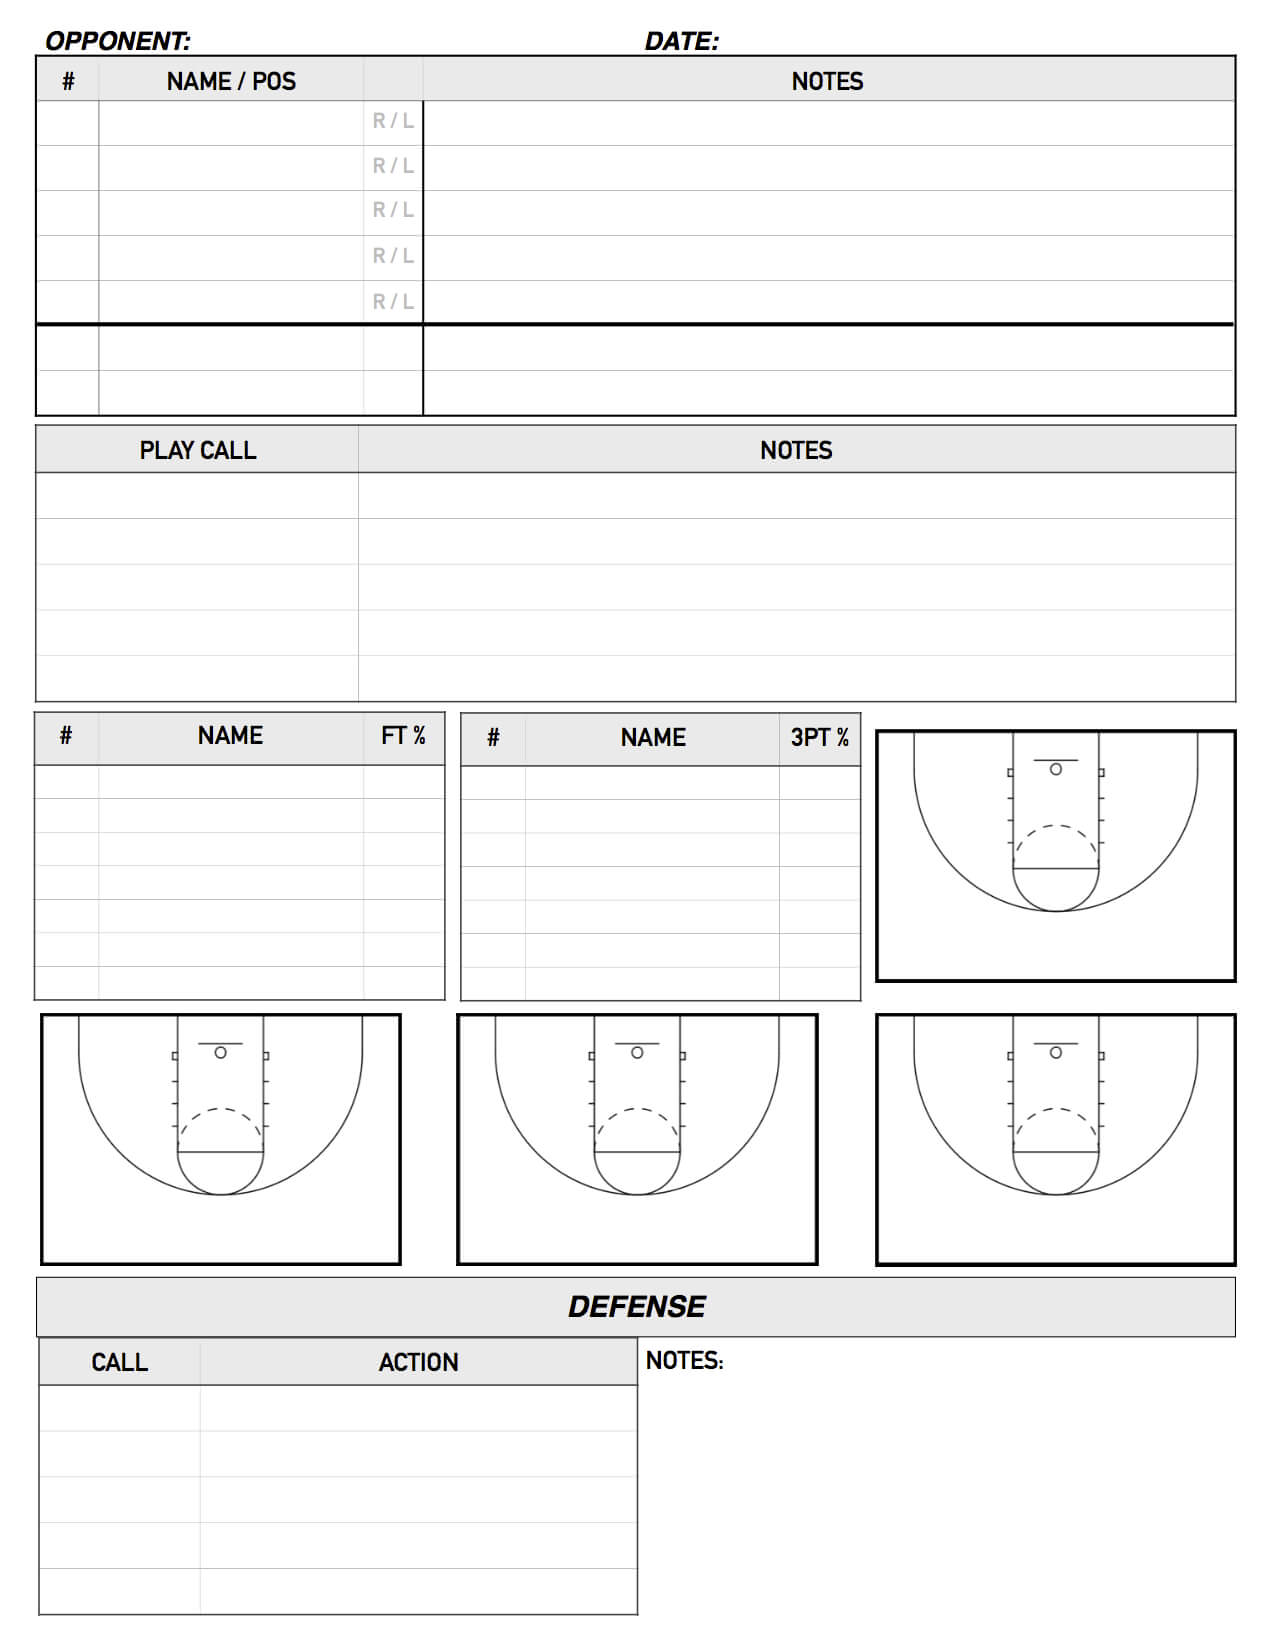 Report Examples College Basketball Scouting Template Team Inside Scouting Report Basketball Template